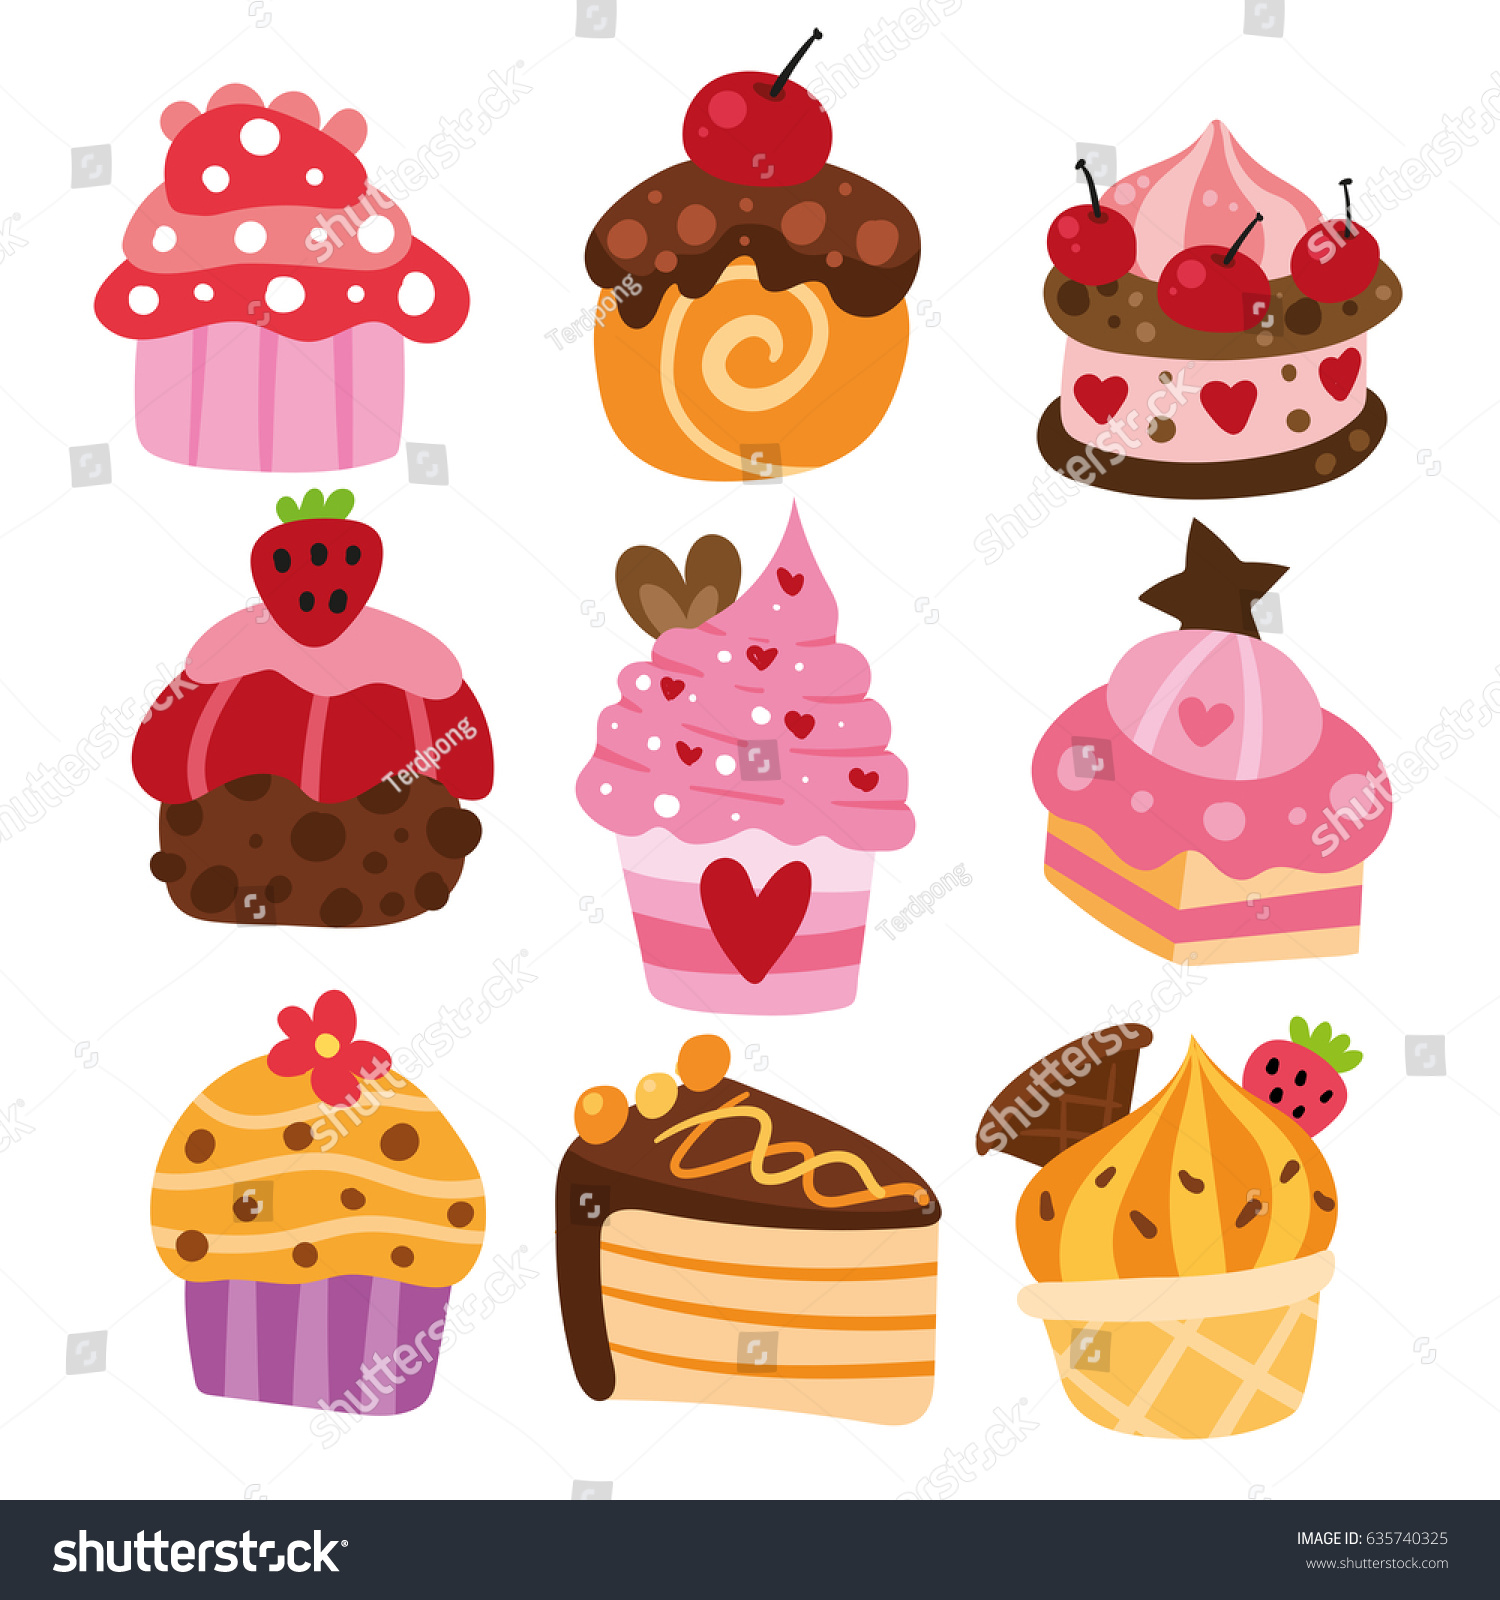 Larva Cartoon Cake Design : Cake Cartoon Vector Design Stock Vector 635740325 ...